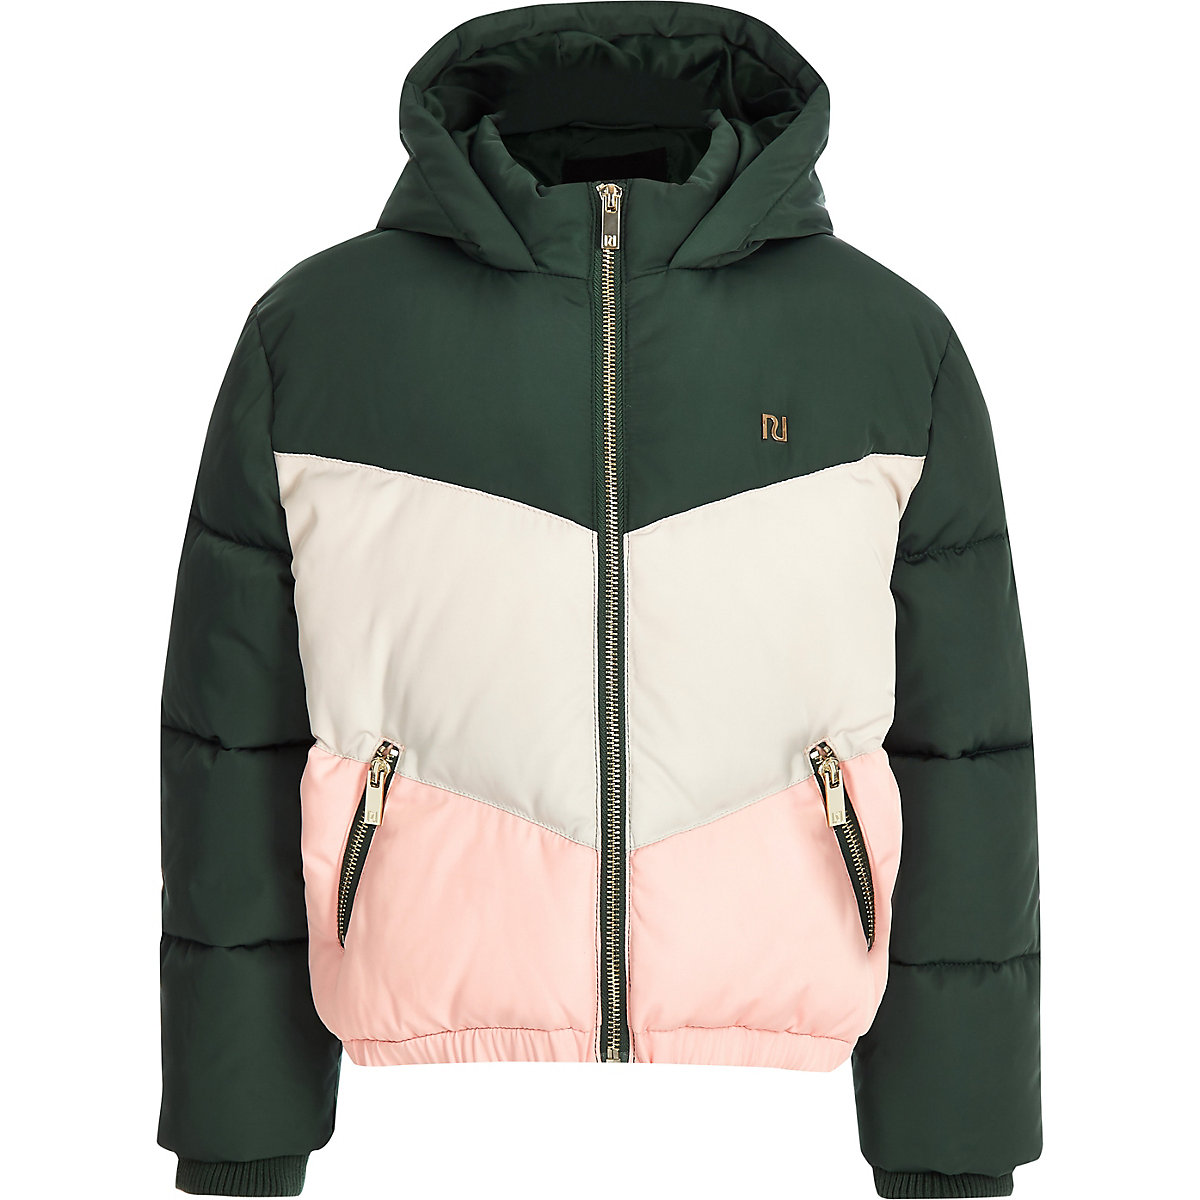 Girls green color block hooded puffer coat